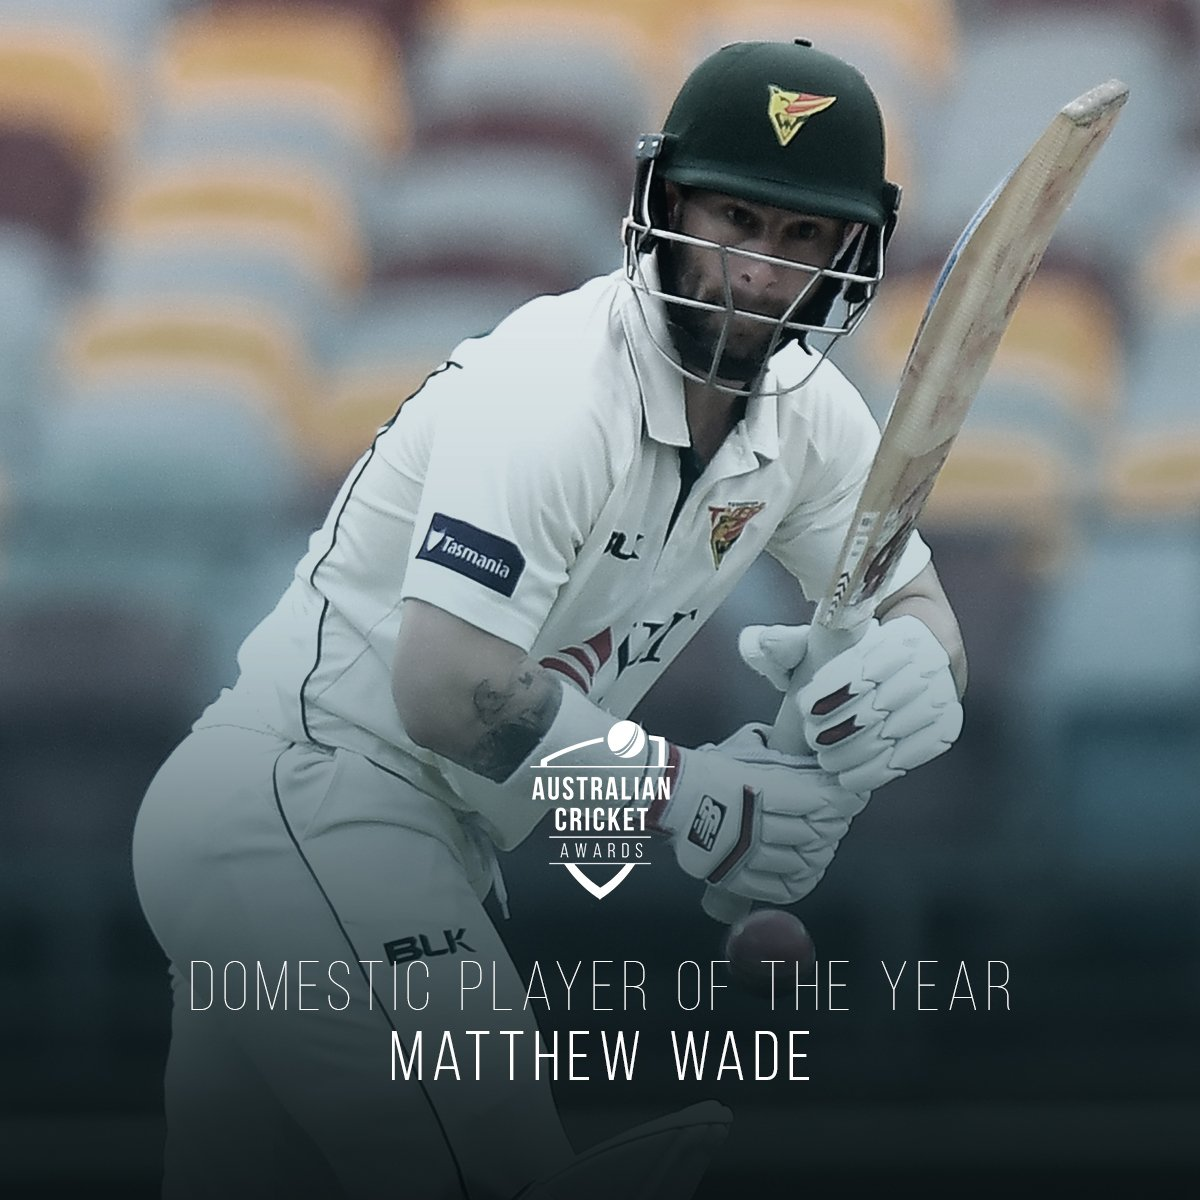 An #AusCricketAwards gong to go with all his runs in 2018.   Matthew Wade is the Men's Domestic Player of the Year! <br>http://pic.twitter.com/iGLTguXfRt